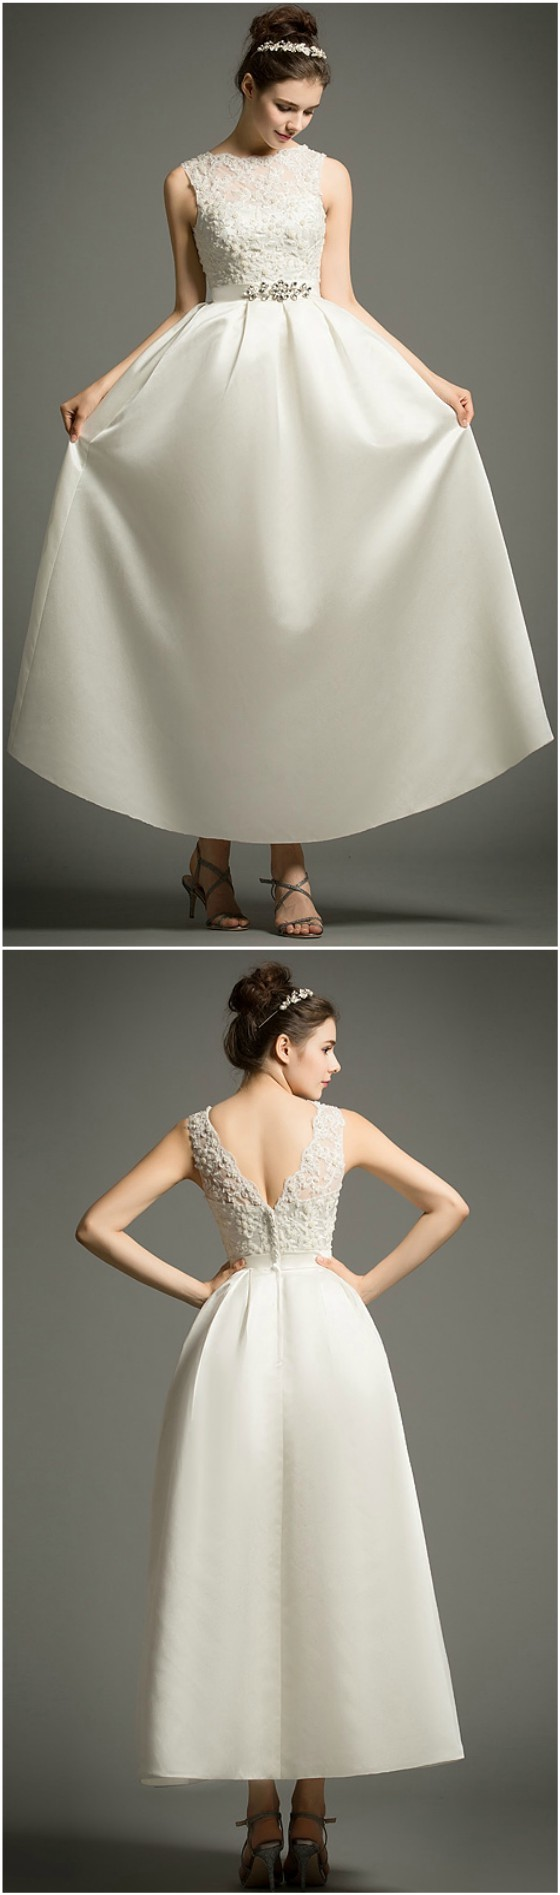 Simple Vintage Tealength Satin Wedding Dress With Lace